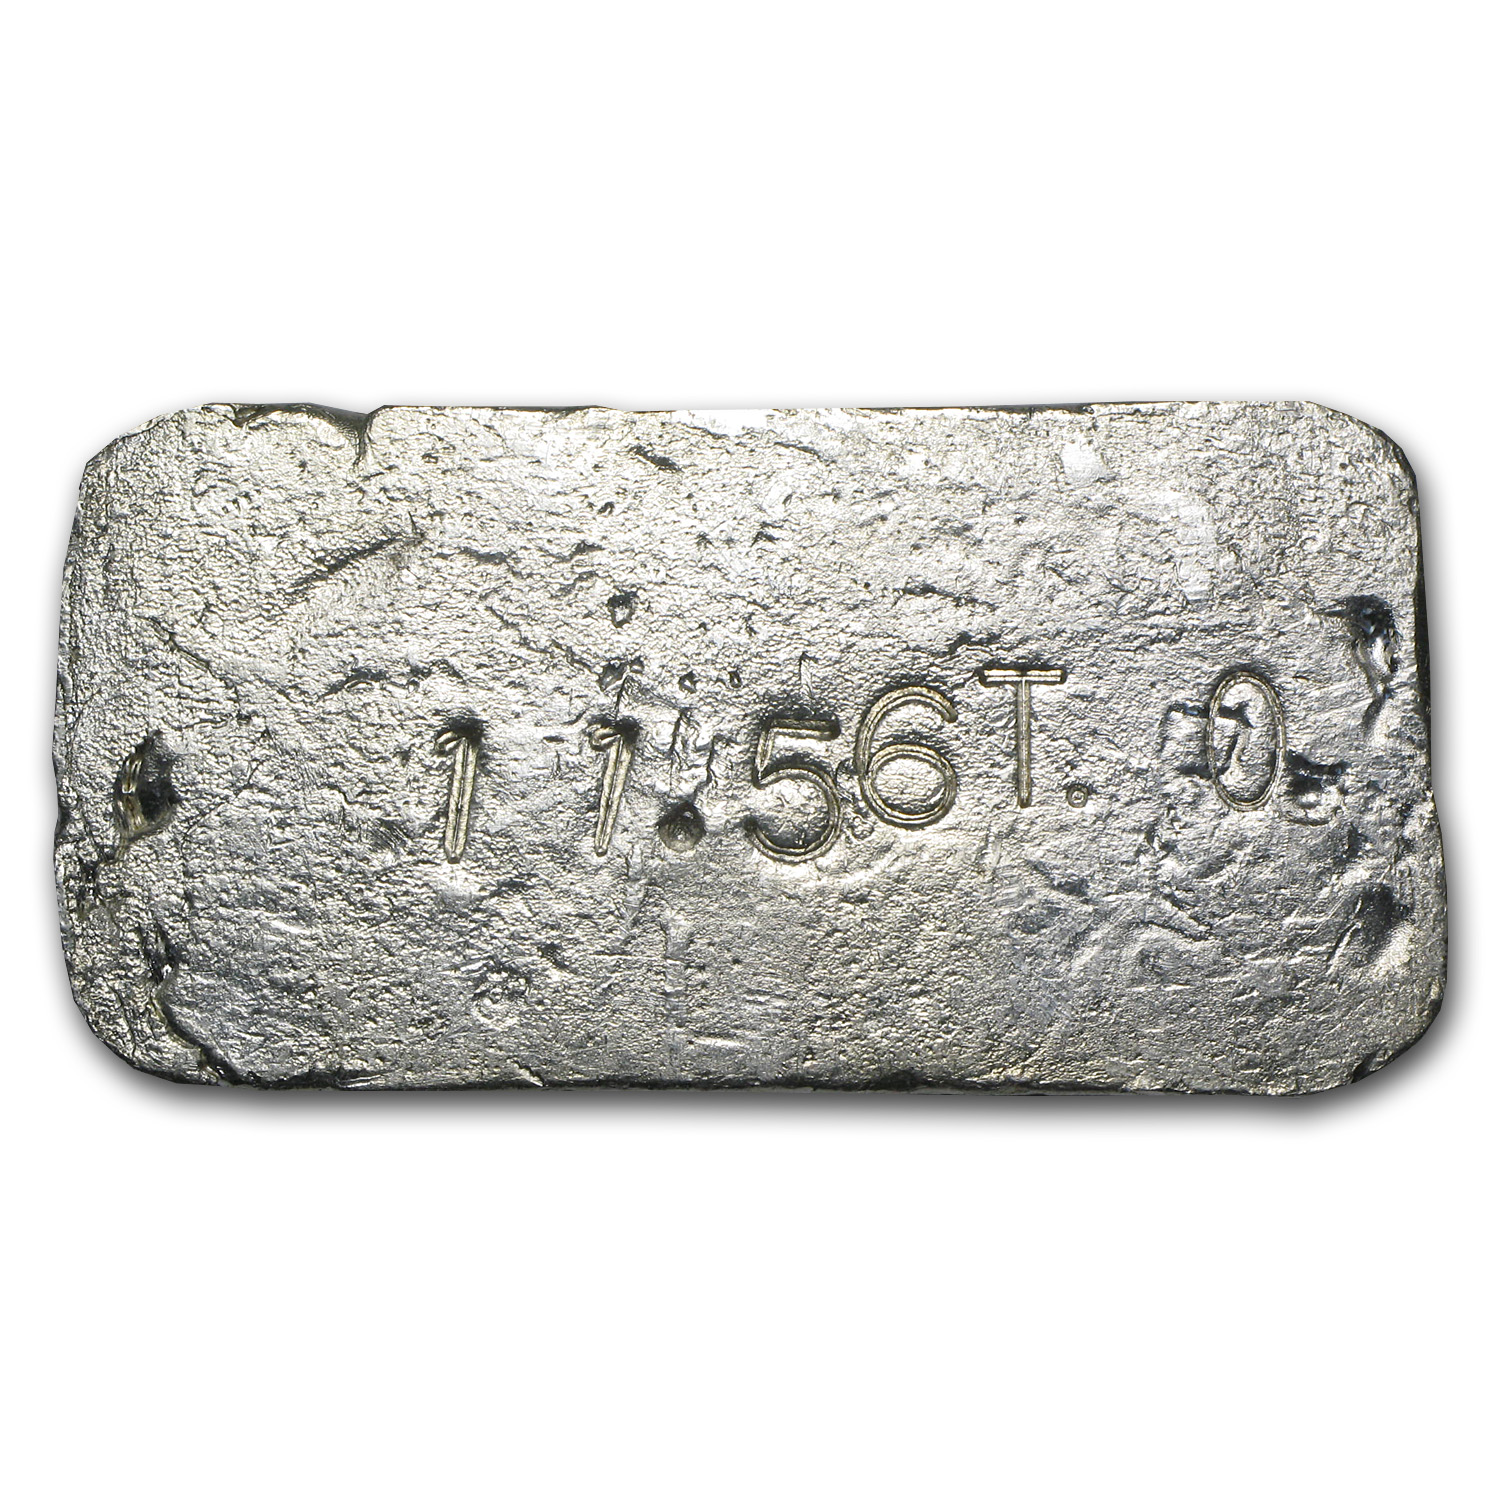 11.56 oz Silver Bars - B. R. MacKay & Sons